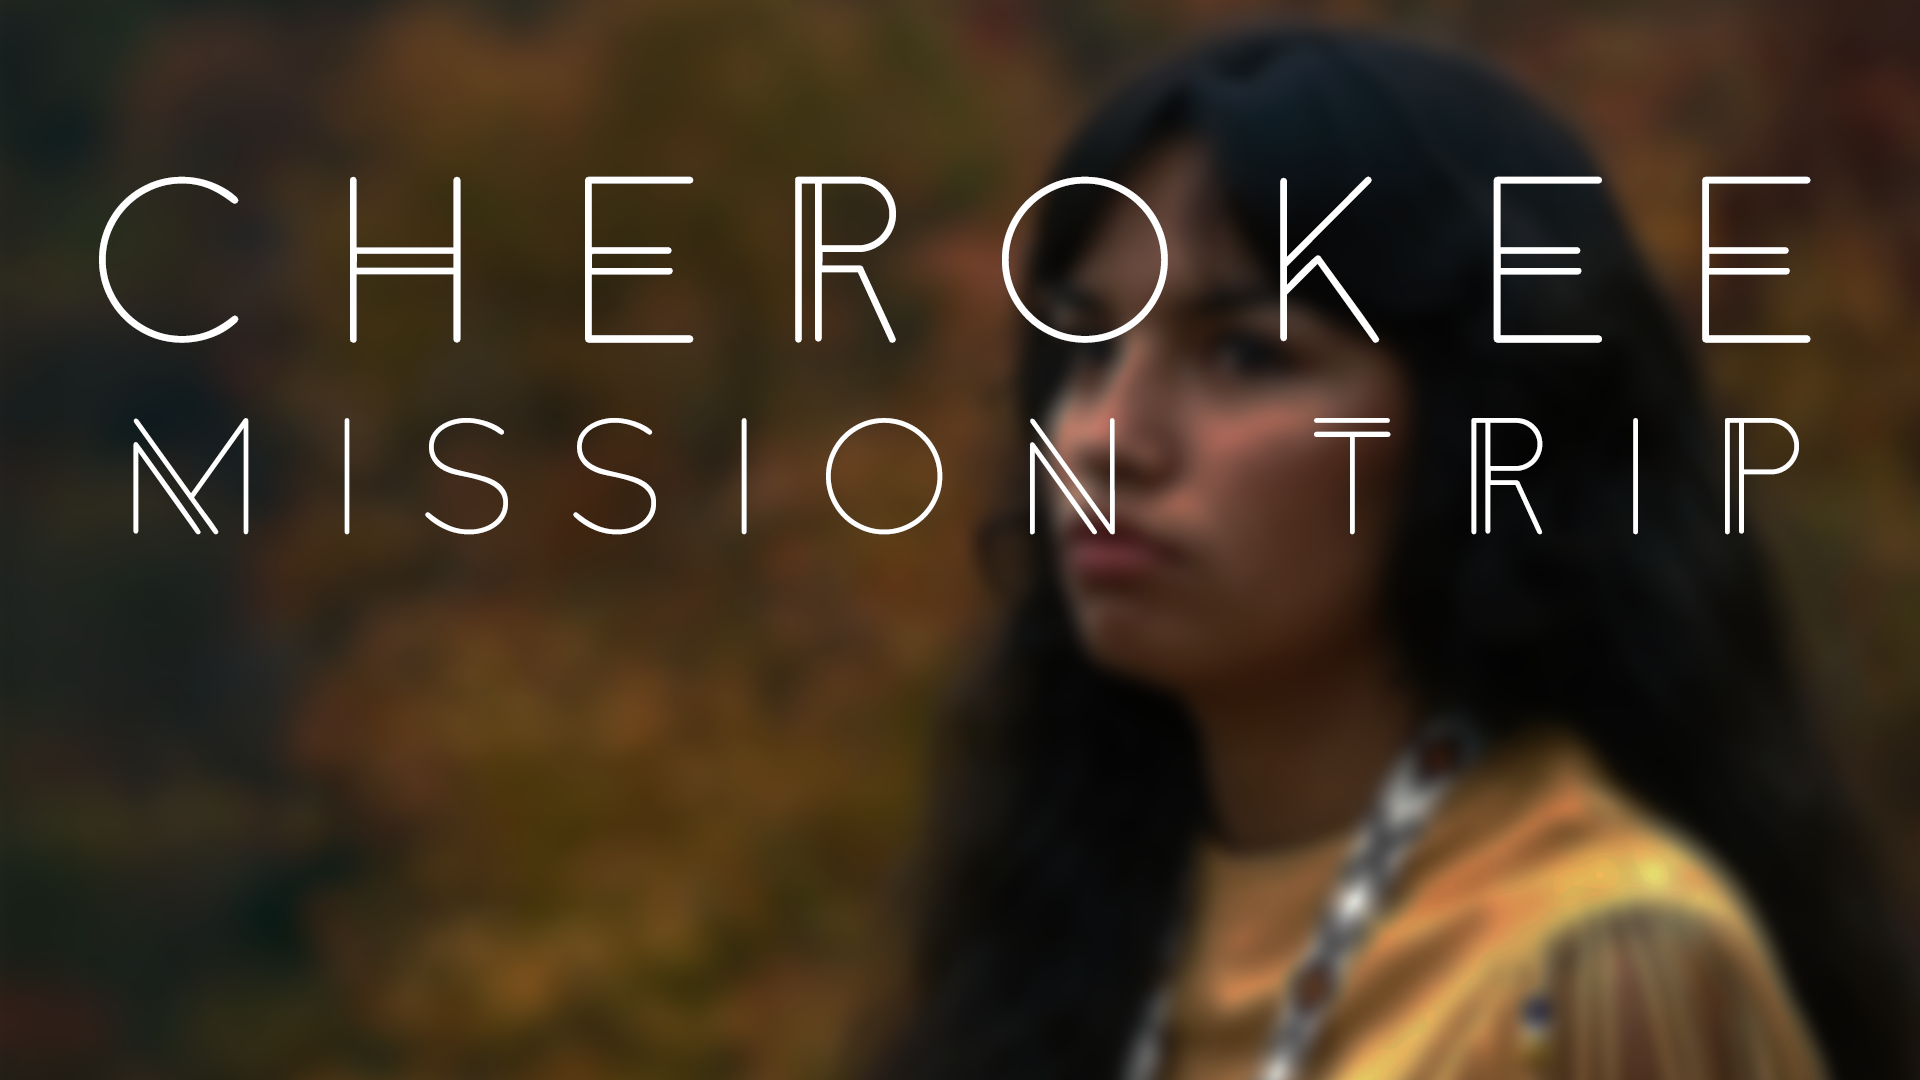 CherokeeMission